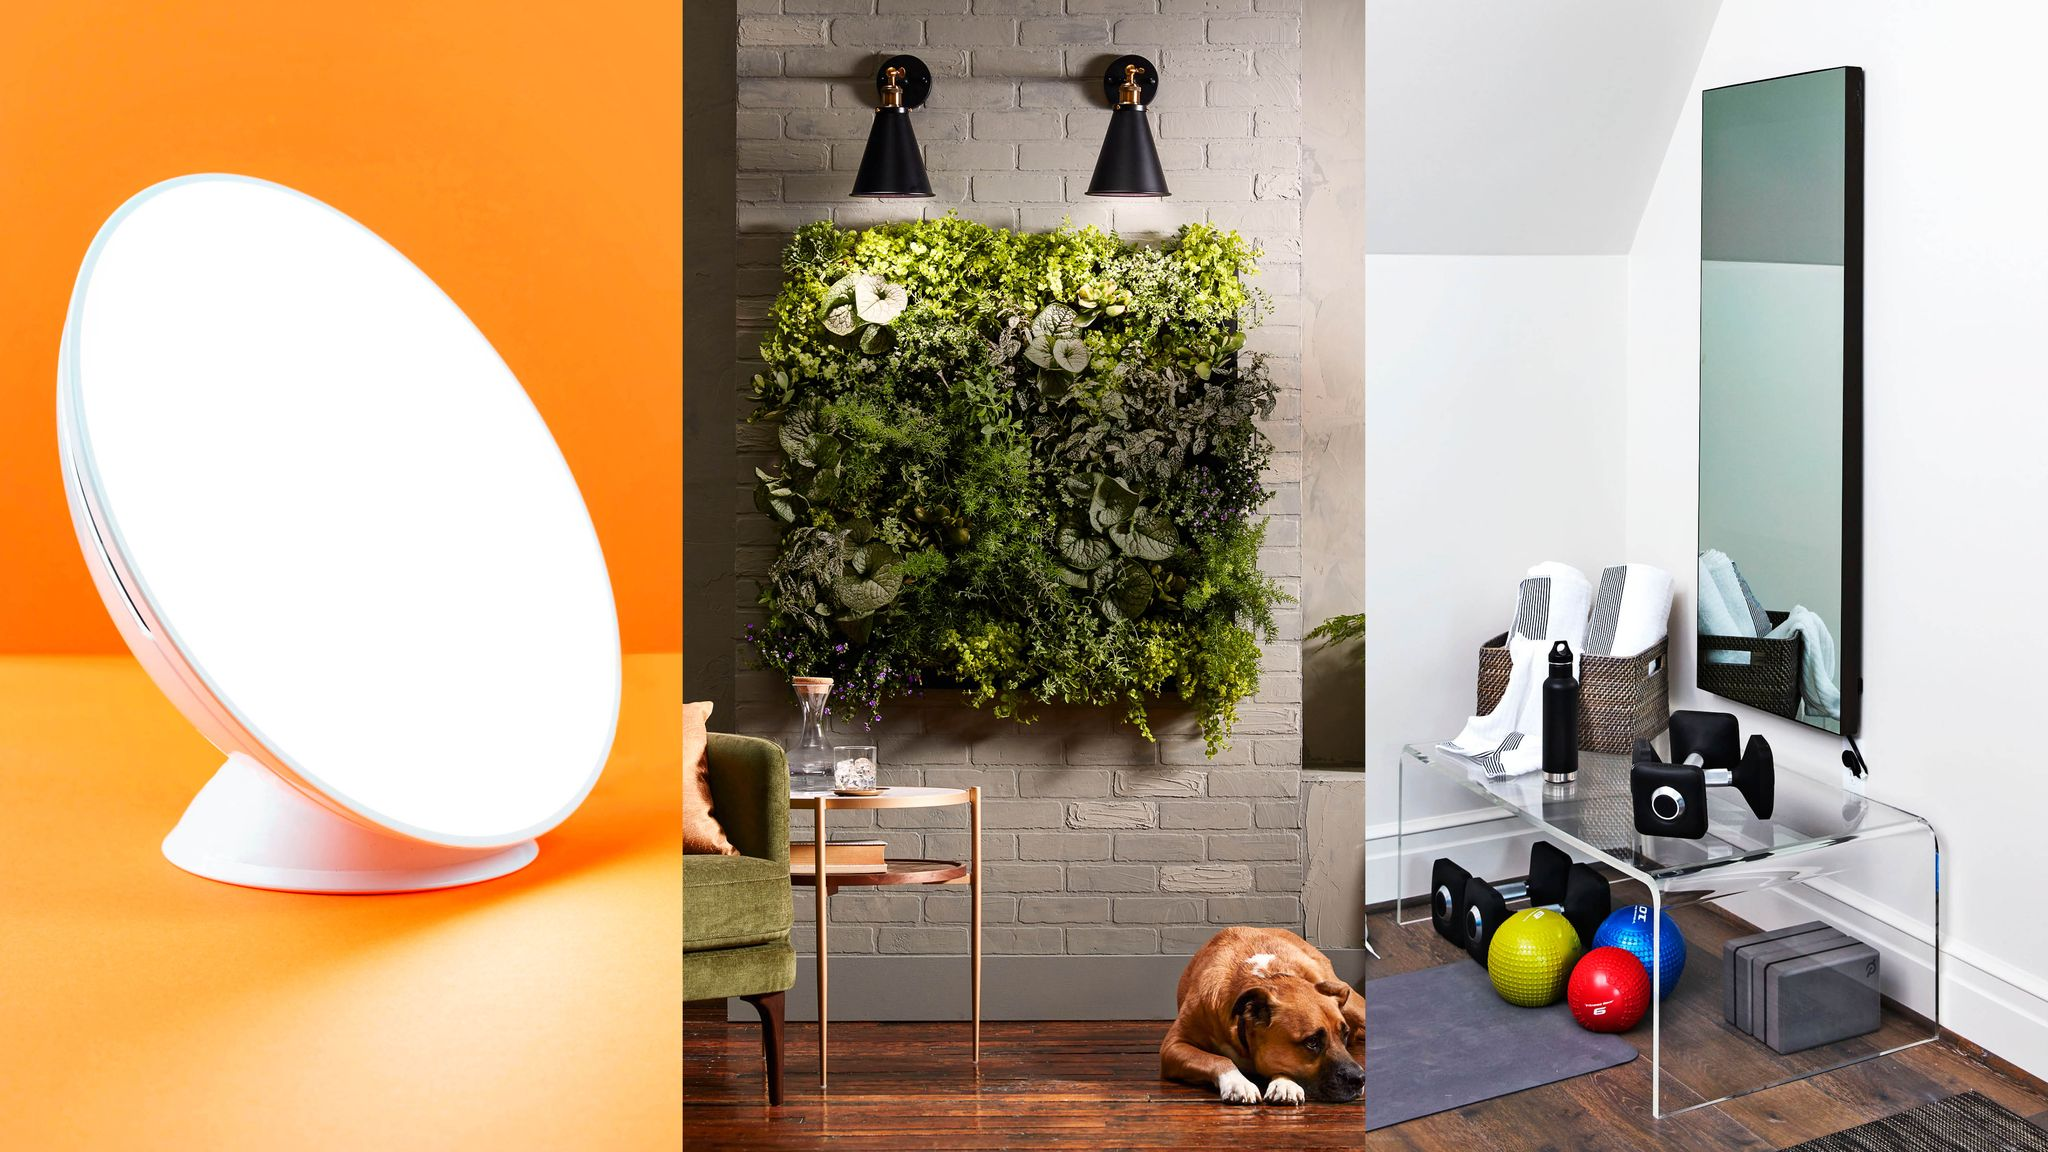 50 Products That'll Dramatically Improve Your Life at Home